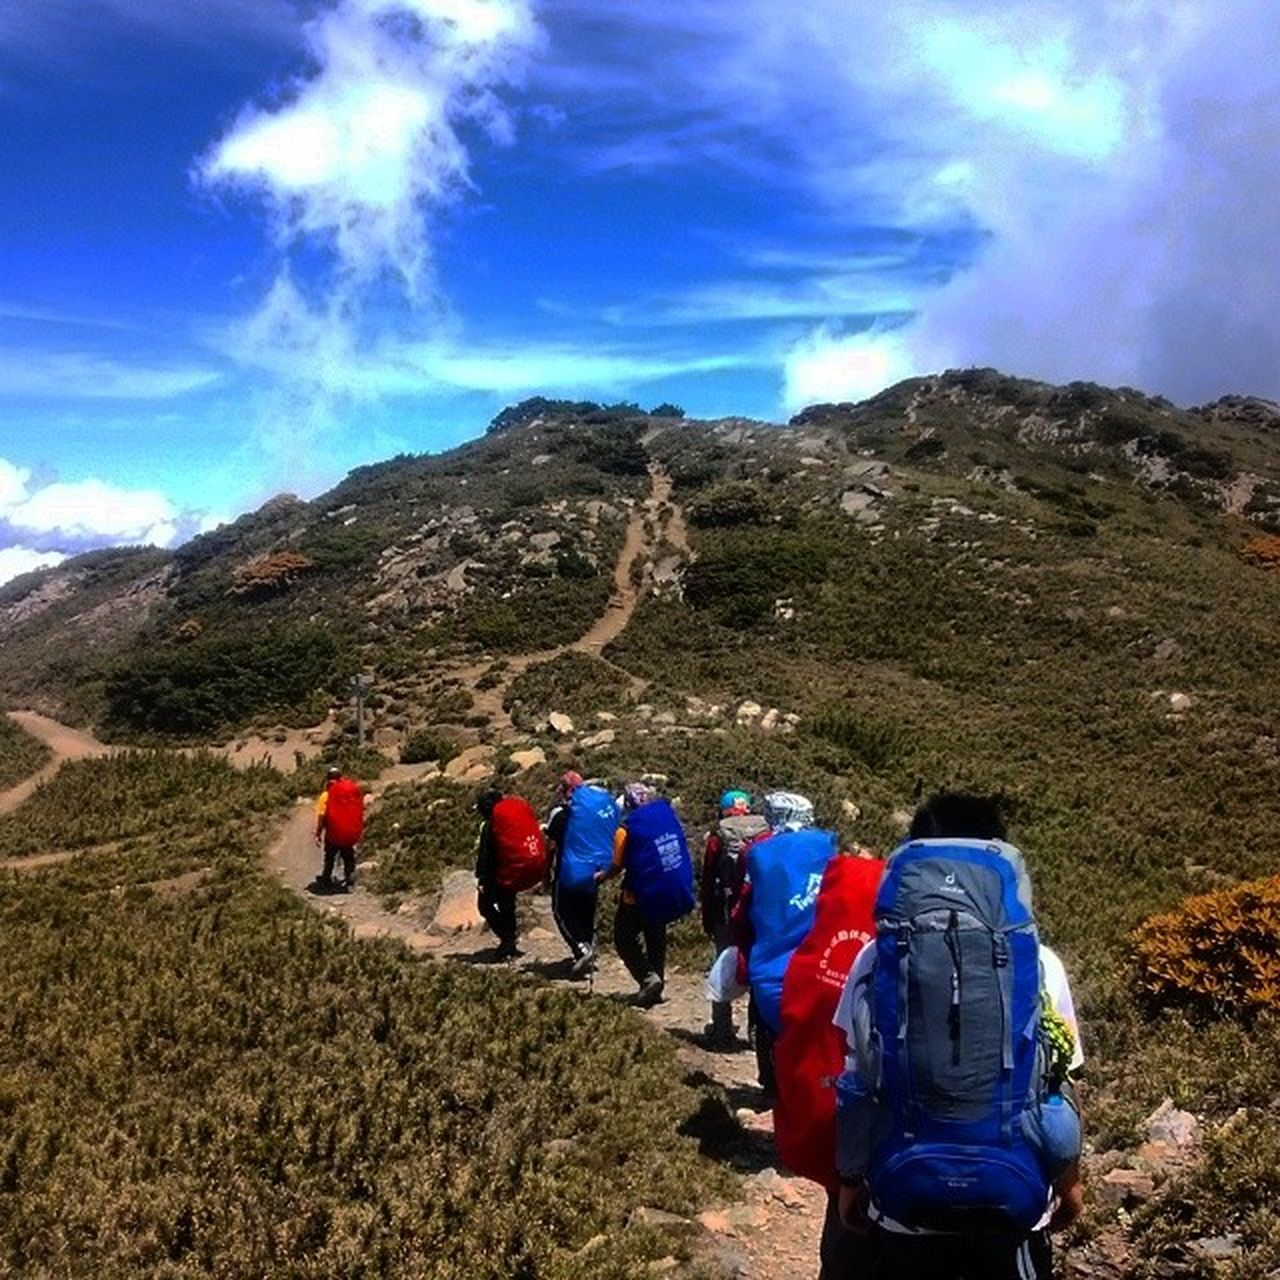 real people, mountain, adventure, hiking, sky, walking, backpack, nature, rear view, hiker, leisure activity, landscape, exploration, lifestyles, beauty in nature, day, men, outdoors, cloud - sky, women, blue, climbing, togetherness, low angle view, scenics, vacations, mountain range, group of people, grass, people